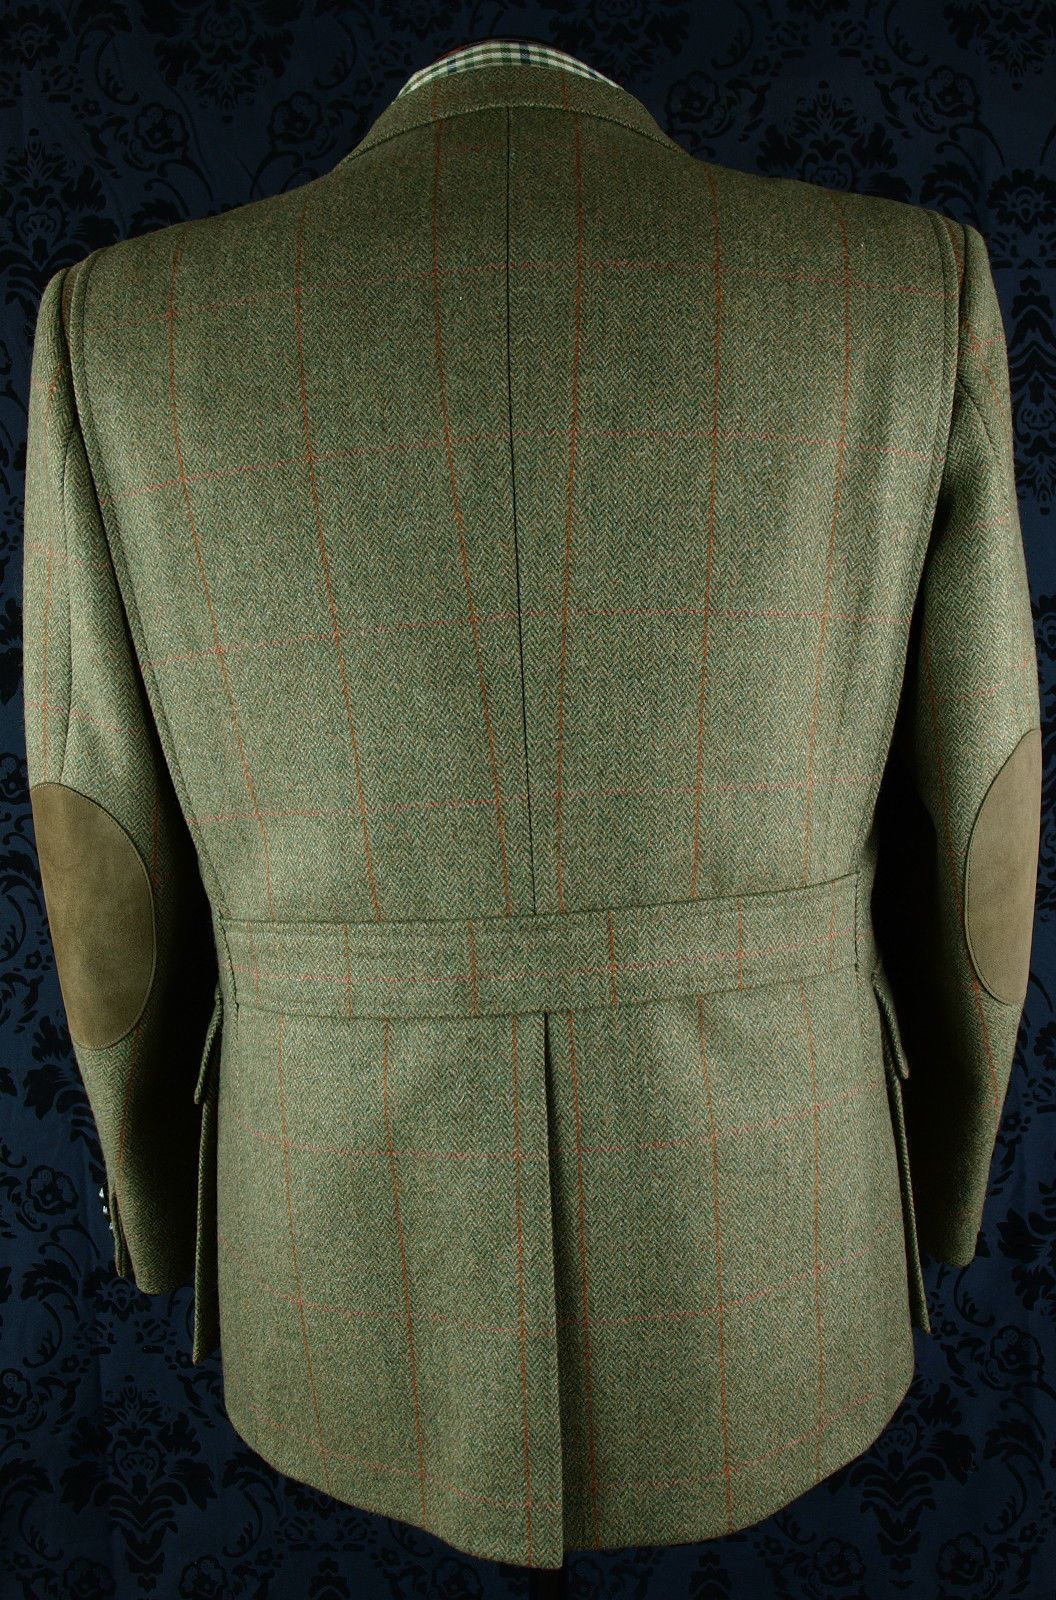 New Superb Mens Tweed Austin Reed Norfolk Shooting Hunting Jacket Blazer 42 S Hunting Jackets Tweed Blazer Jacket